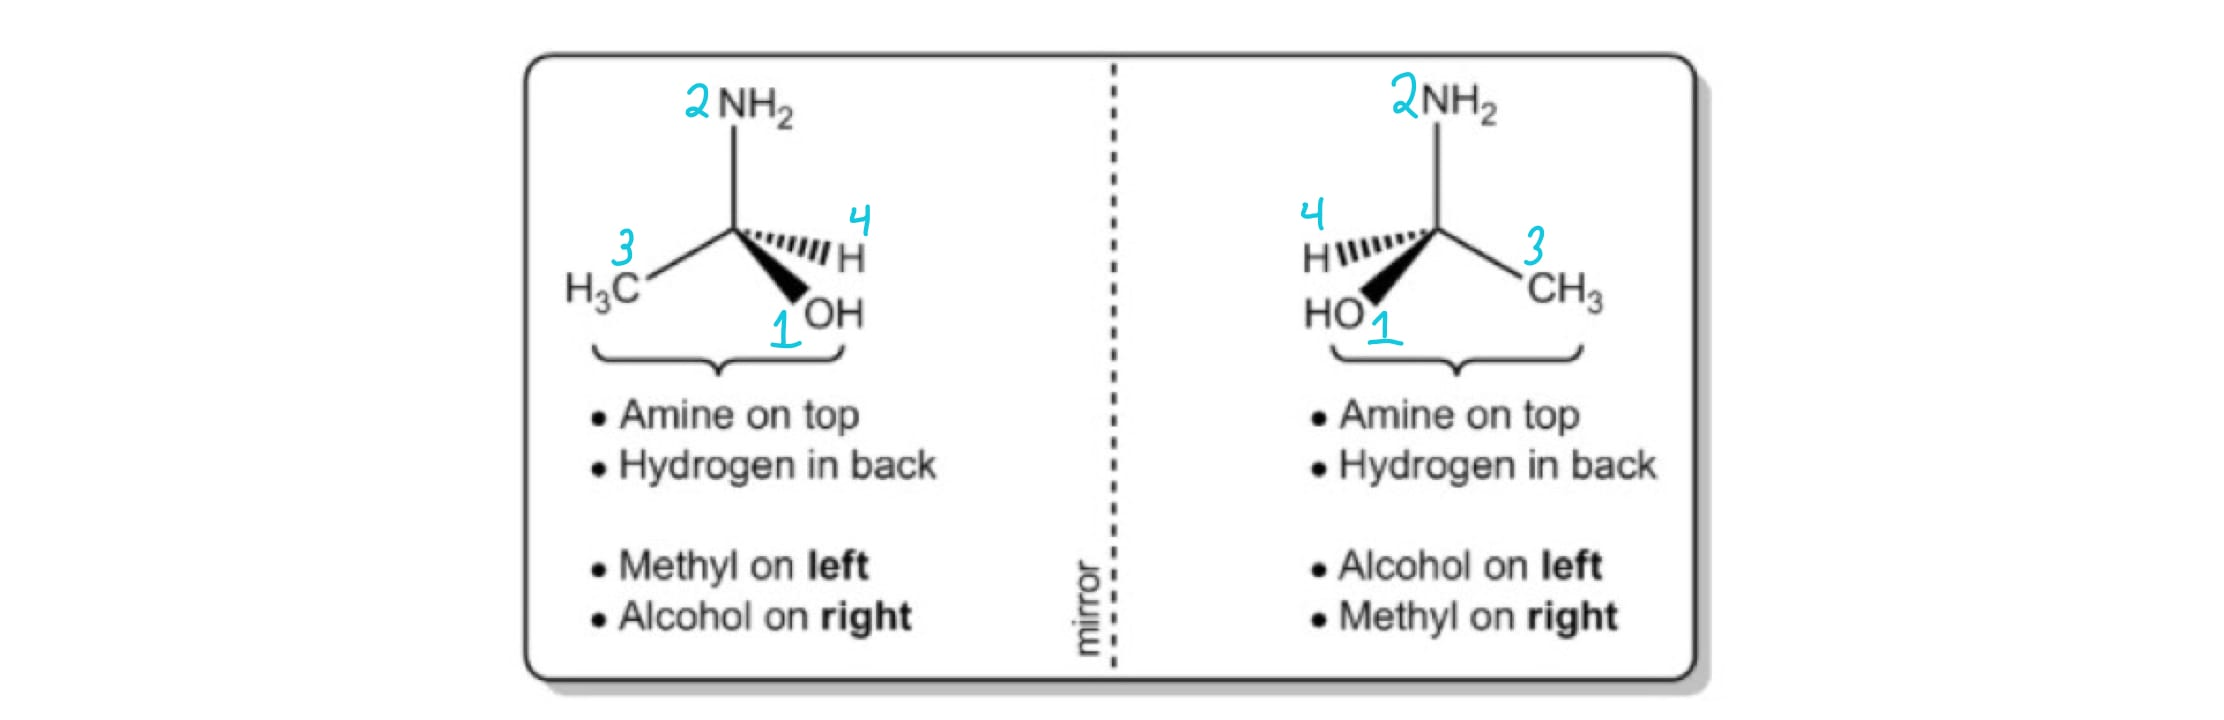 1-aminoethanol with labeled priorities